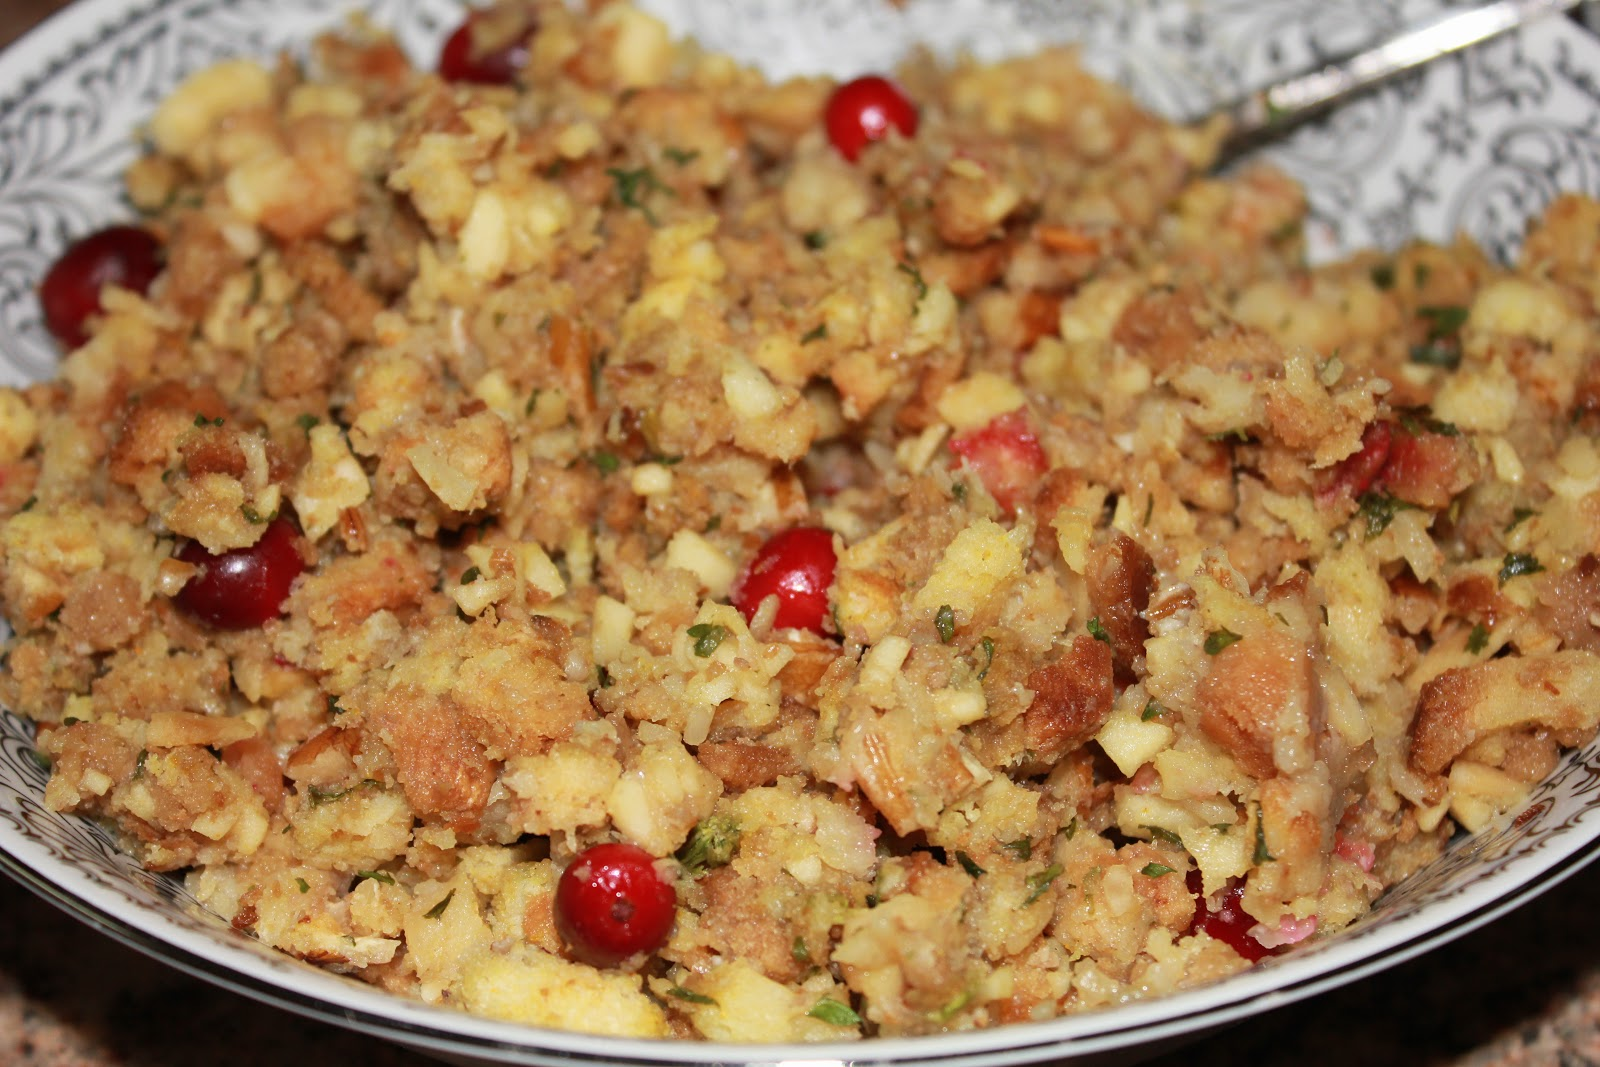 simply made with love: Apple, Cranberry & Pecan Stuffing